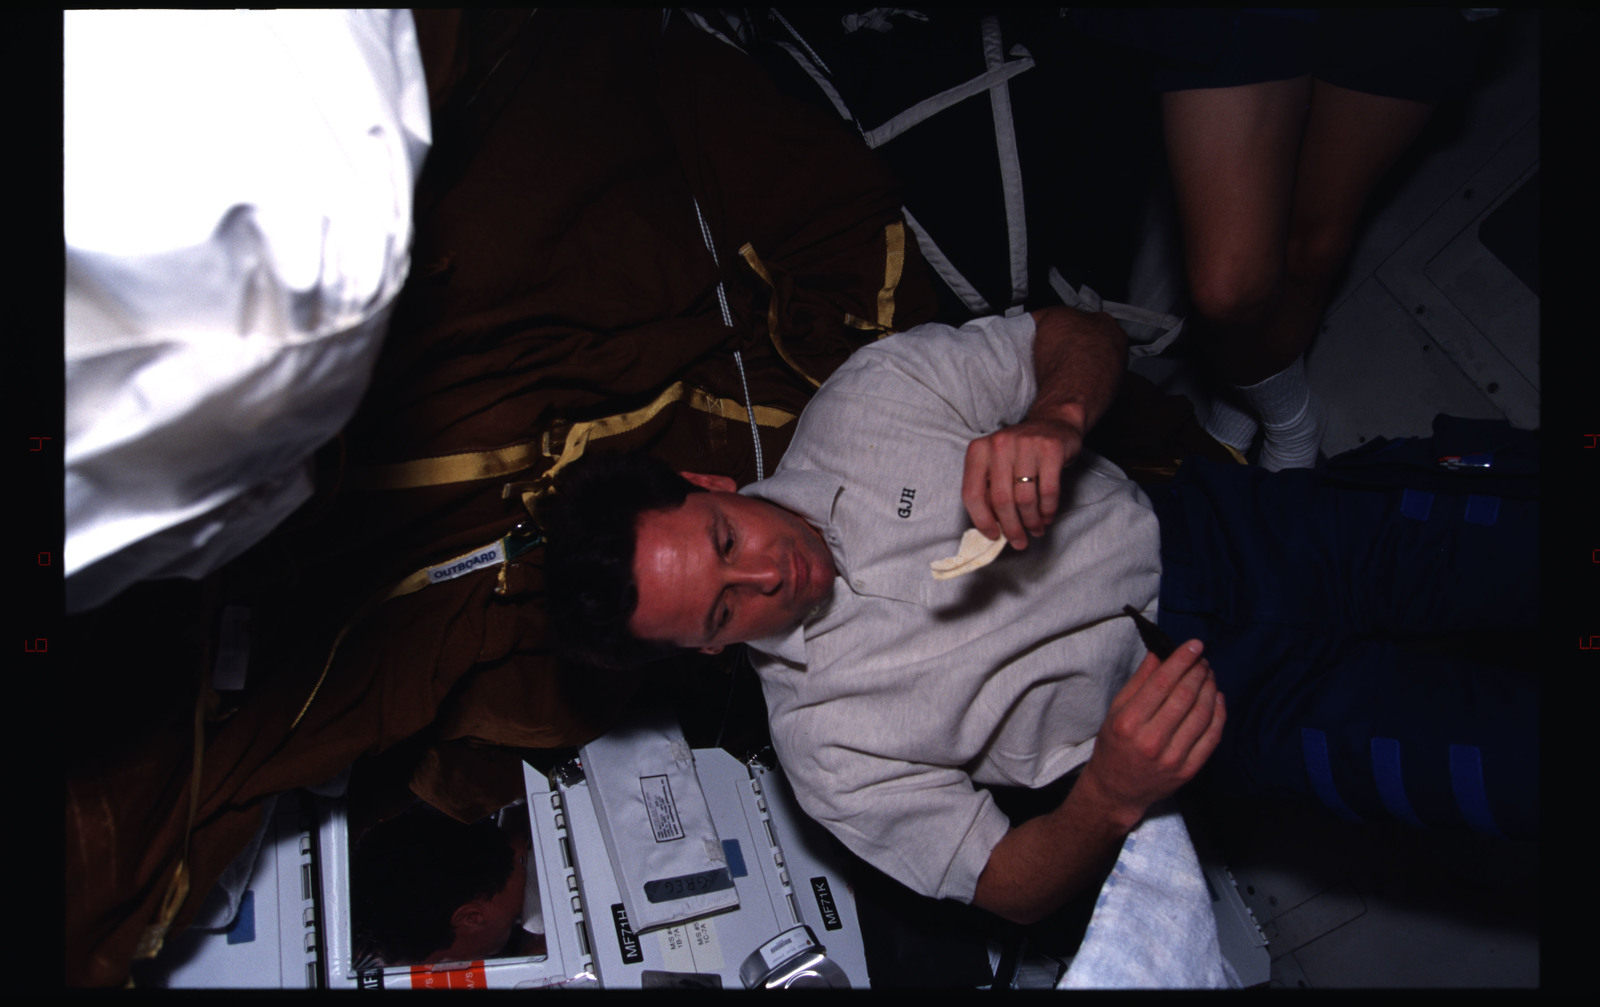 STS082-381-003 - STS-082 - Crewmember activities in the shuttle middeck on day off